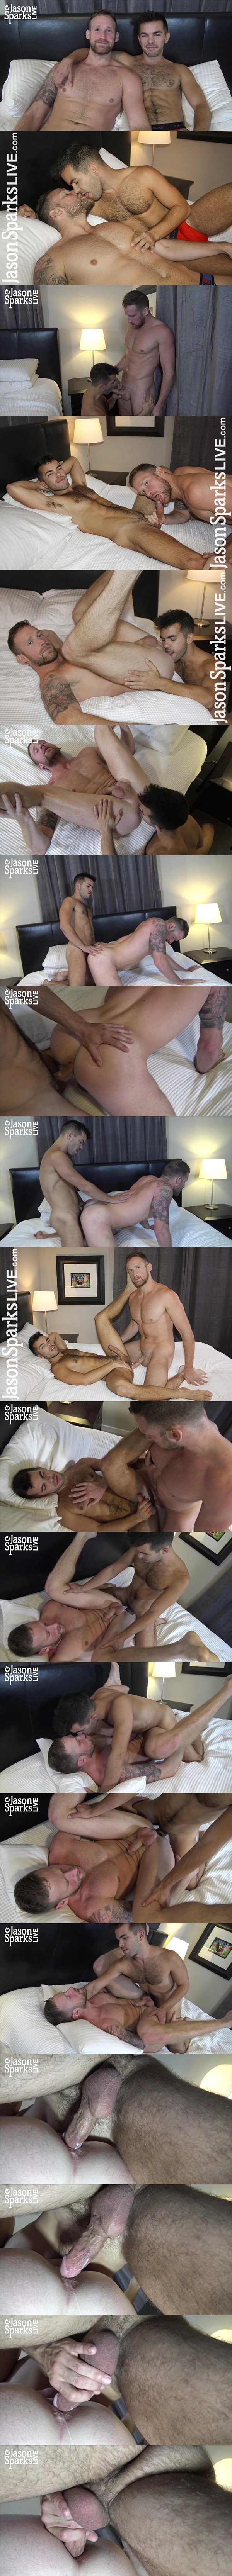 Handsome fit jock Logan Carter and Riley Ross take turns barebacking each other before Riley creampies Logan In Atlanta Part 3 at Jasonsparkslive 02